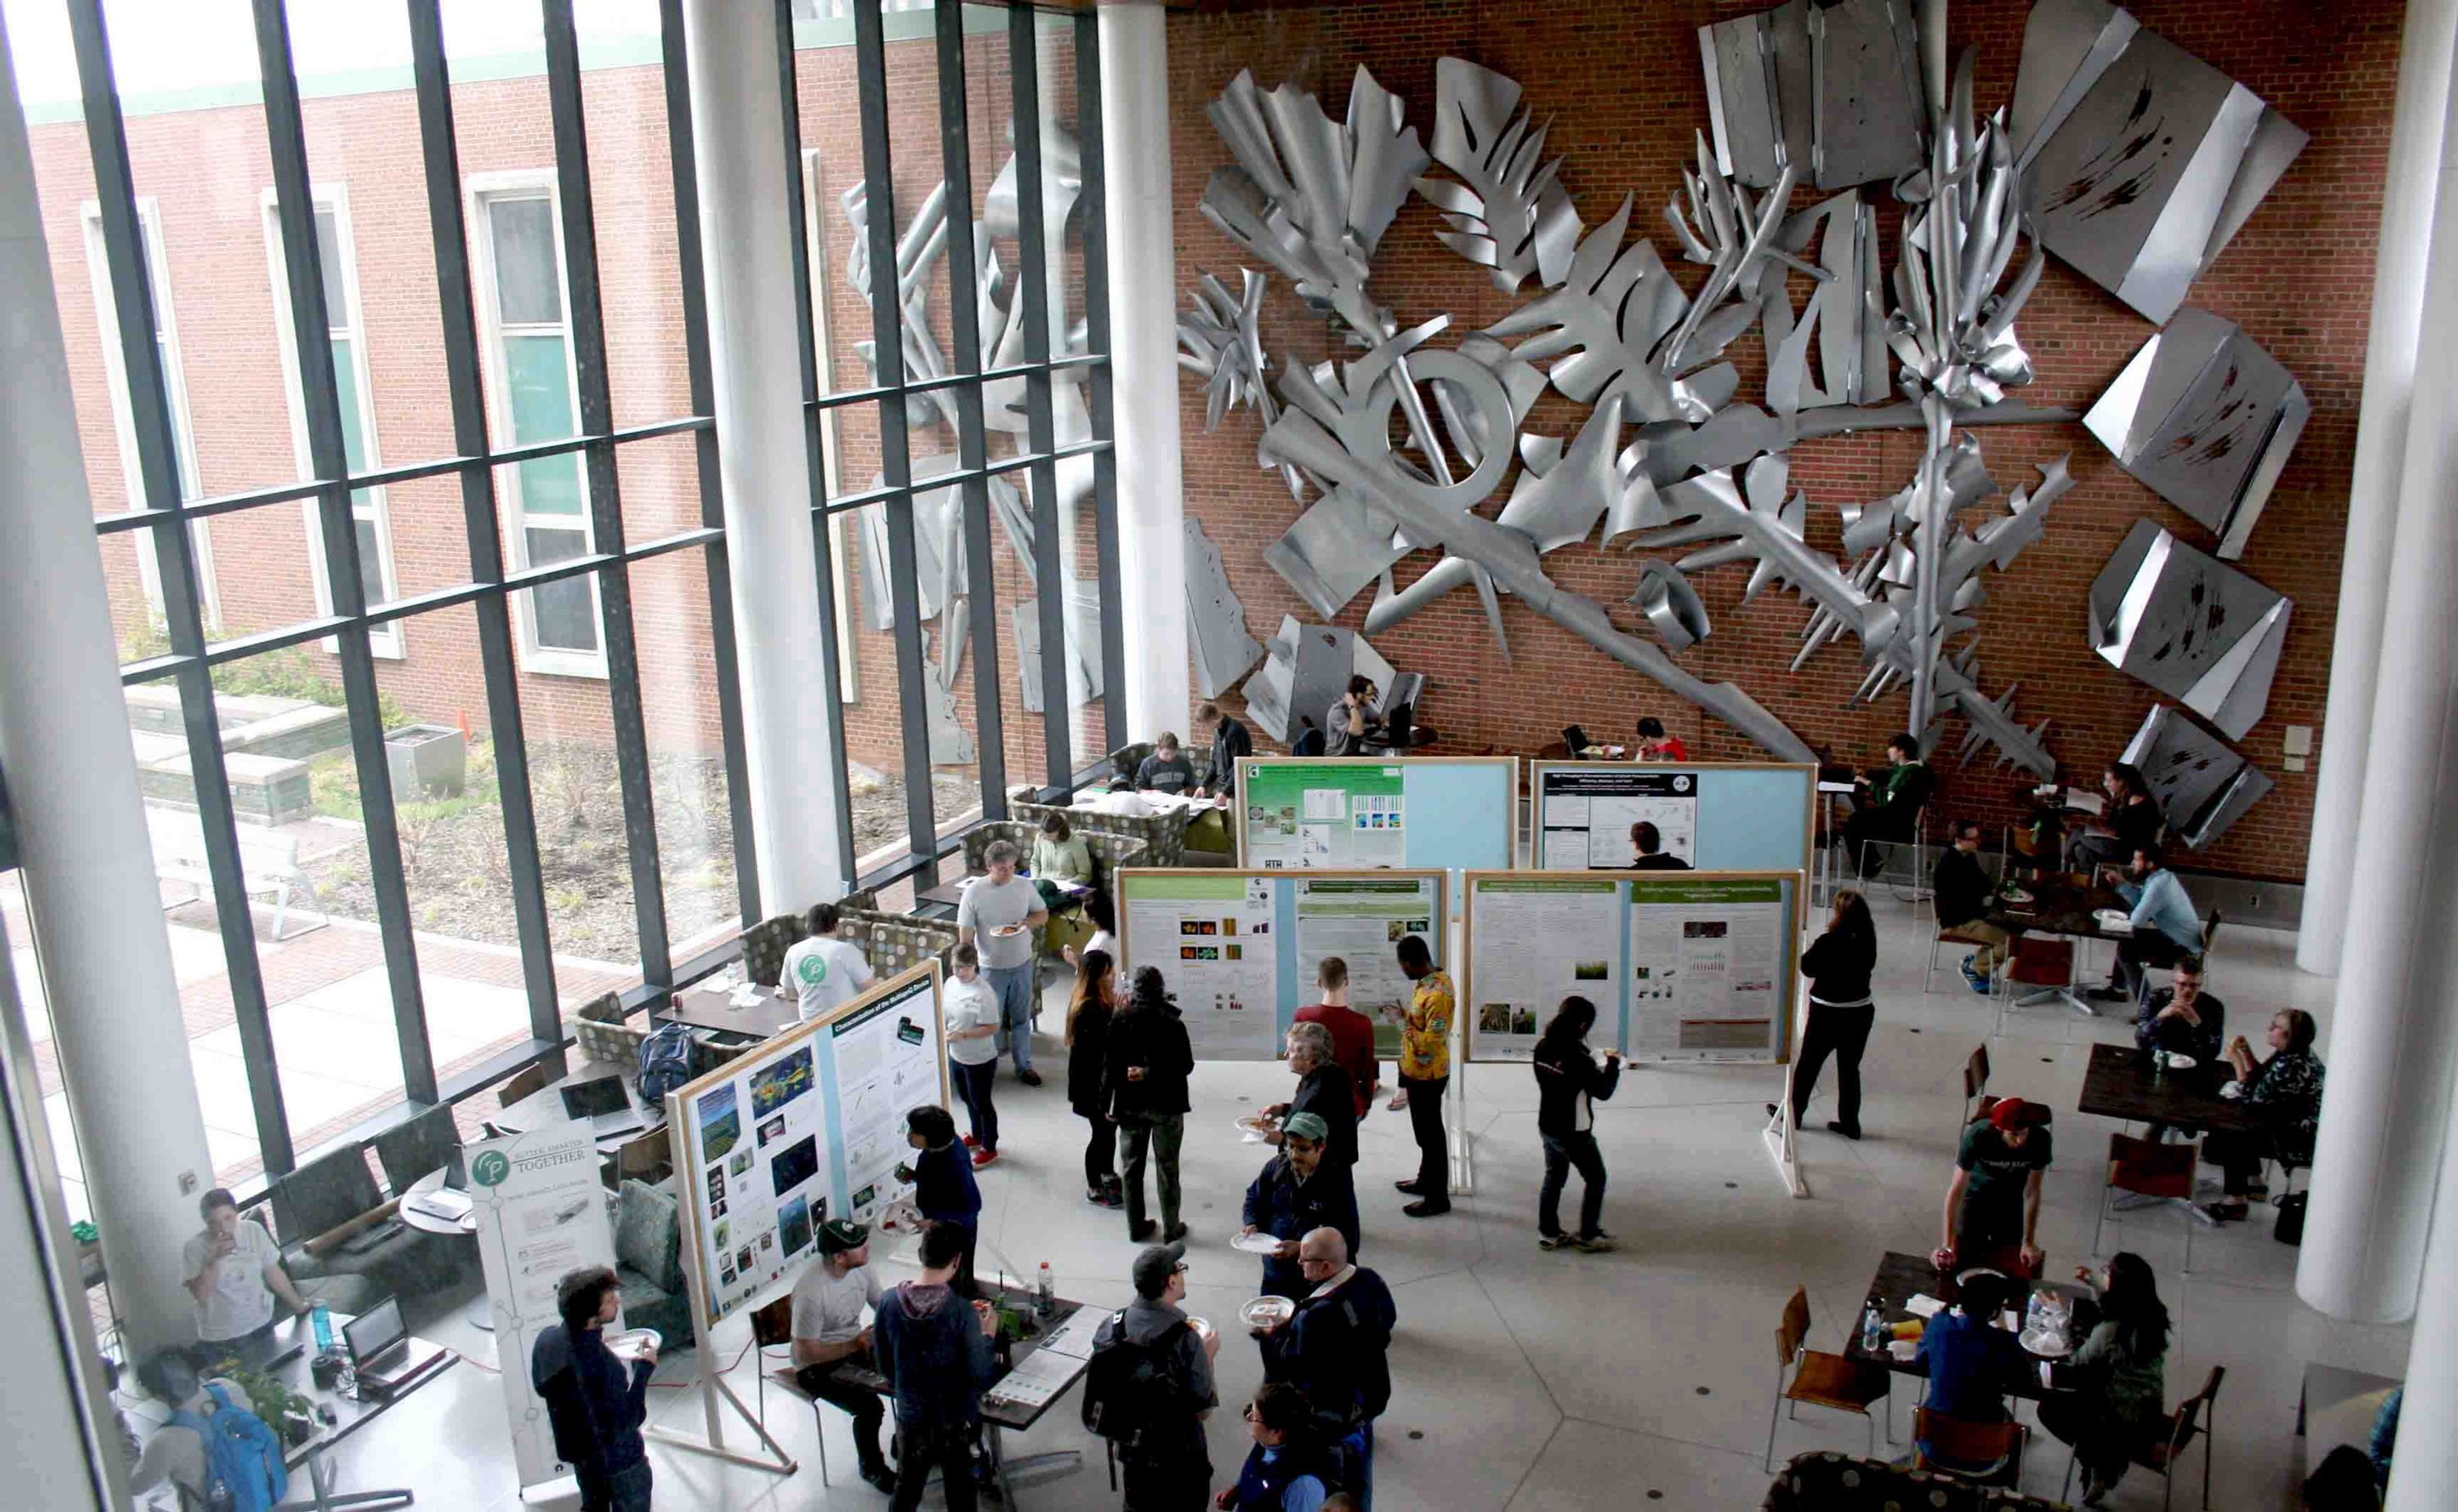 Image of attendees roaming the floor during lunch time, checking out posters and device demos.